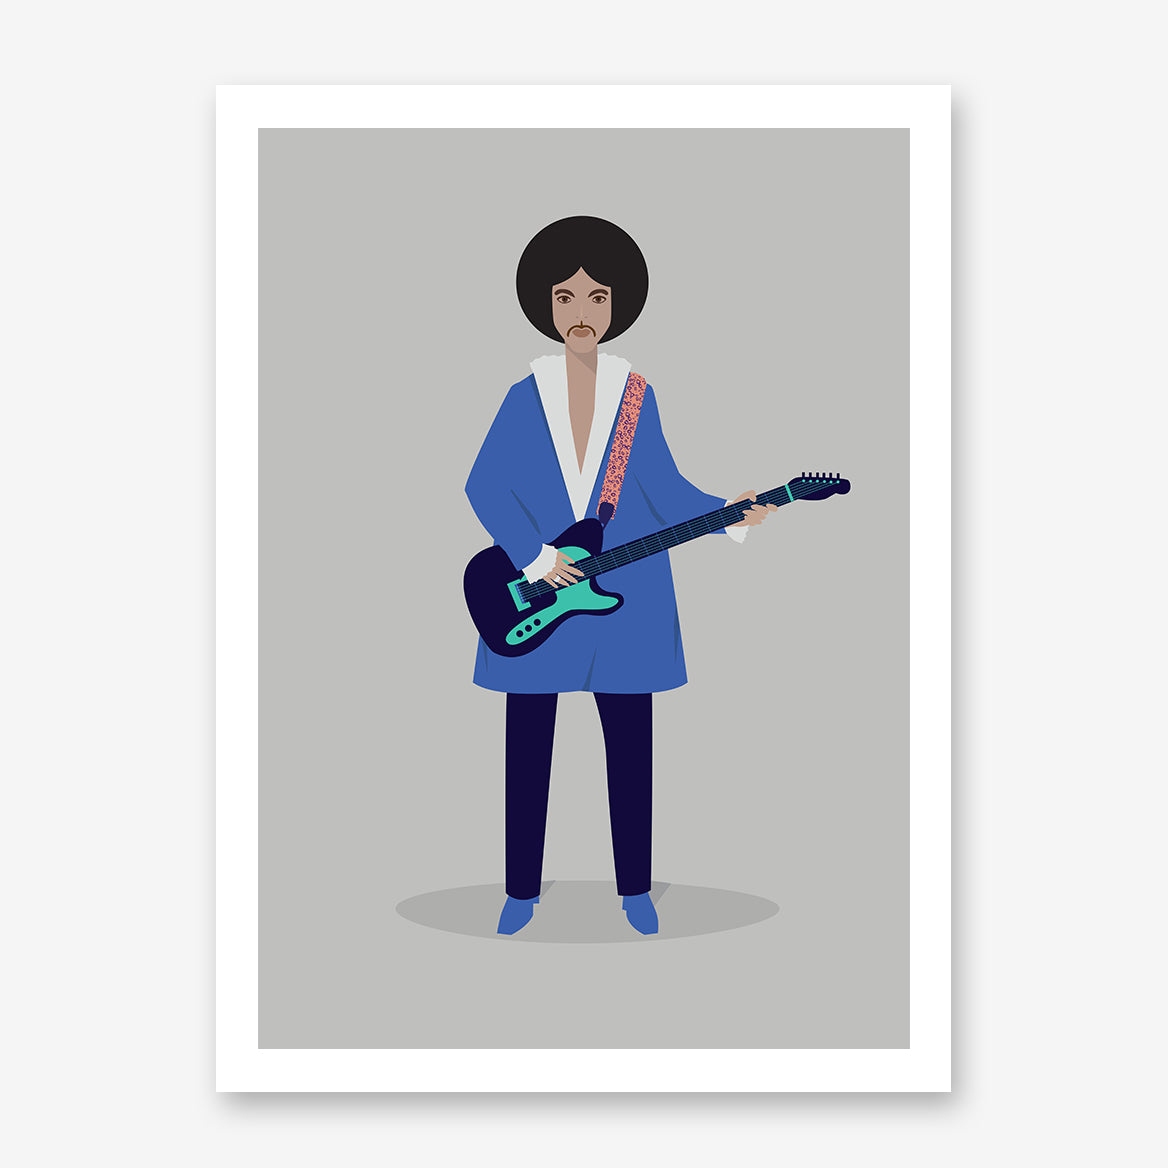 Celebrity illustration print by Judy Kaufmann, with Prince in blue clothes and guitar, on light grey background.